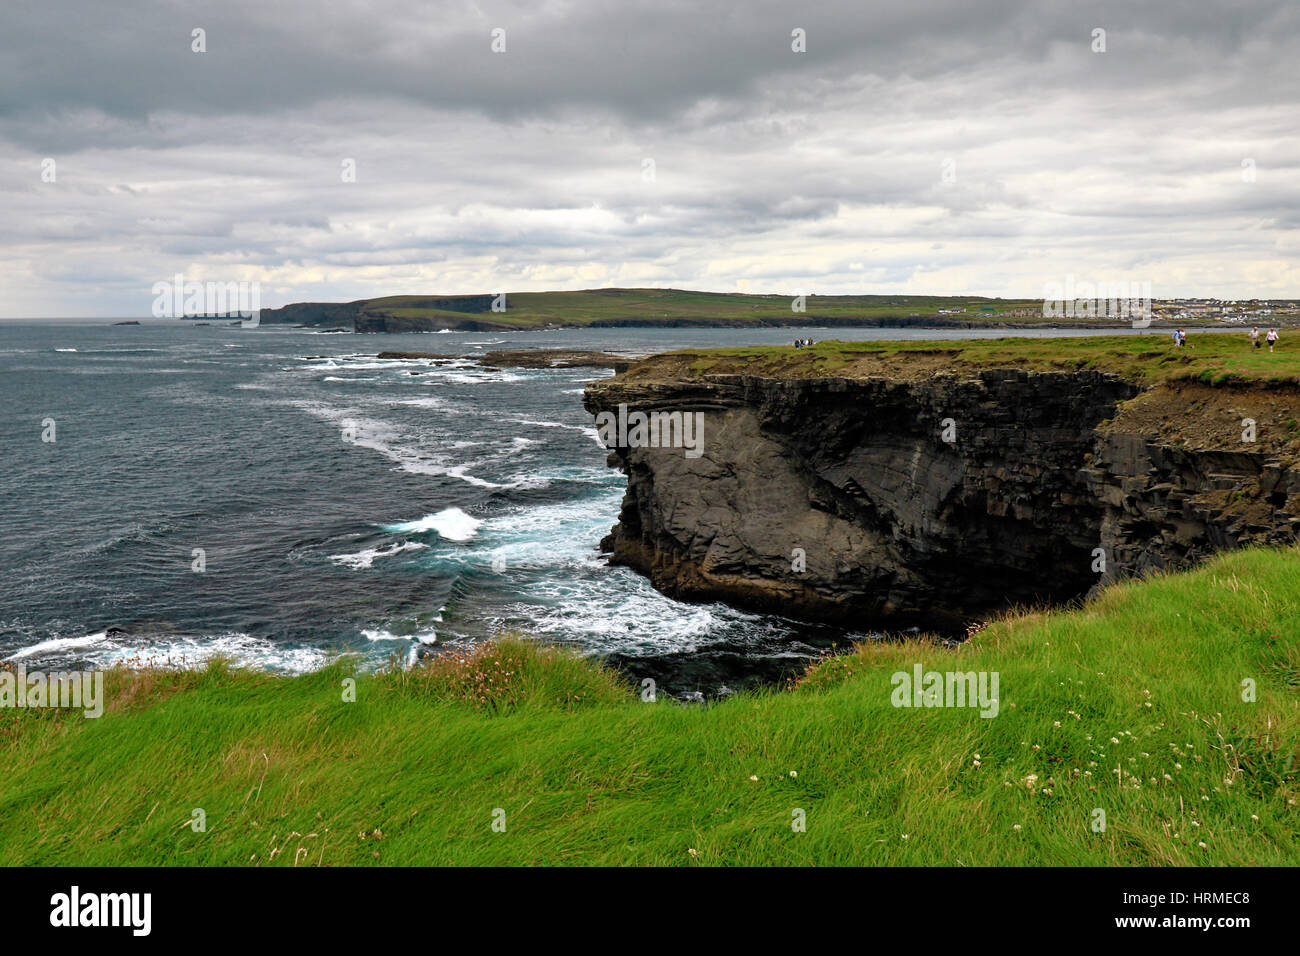 Near the ocean - amazing cliffs and beautiful nature at the coast of Ireland - Stock Image